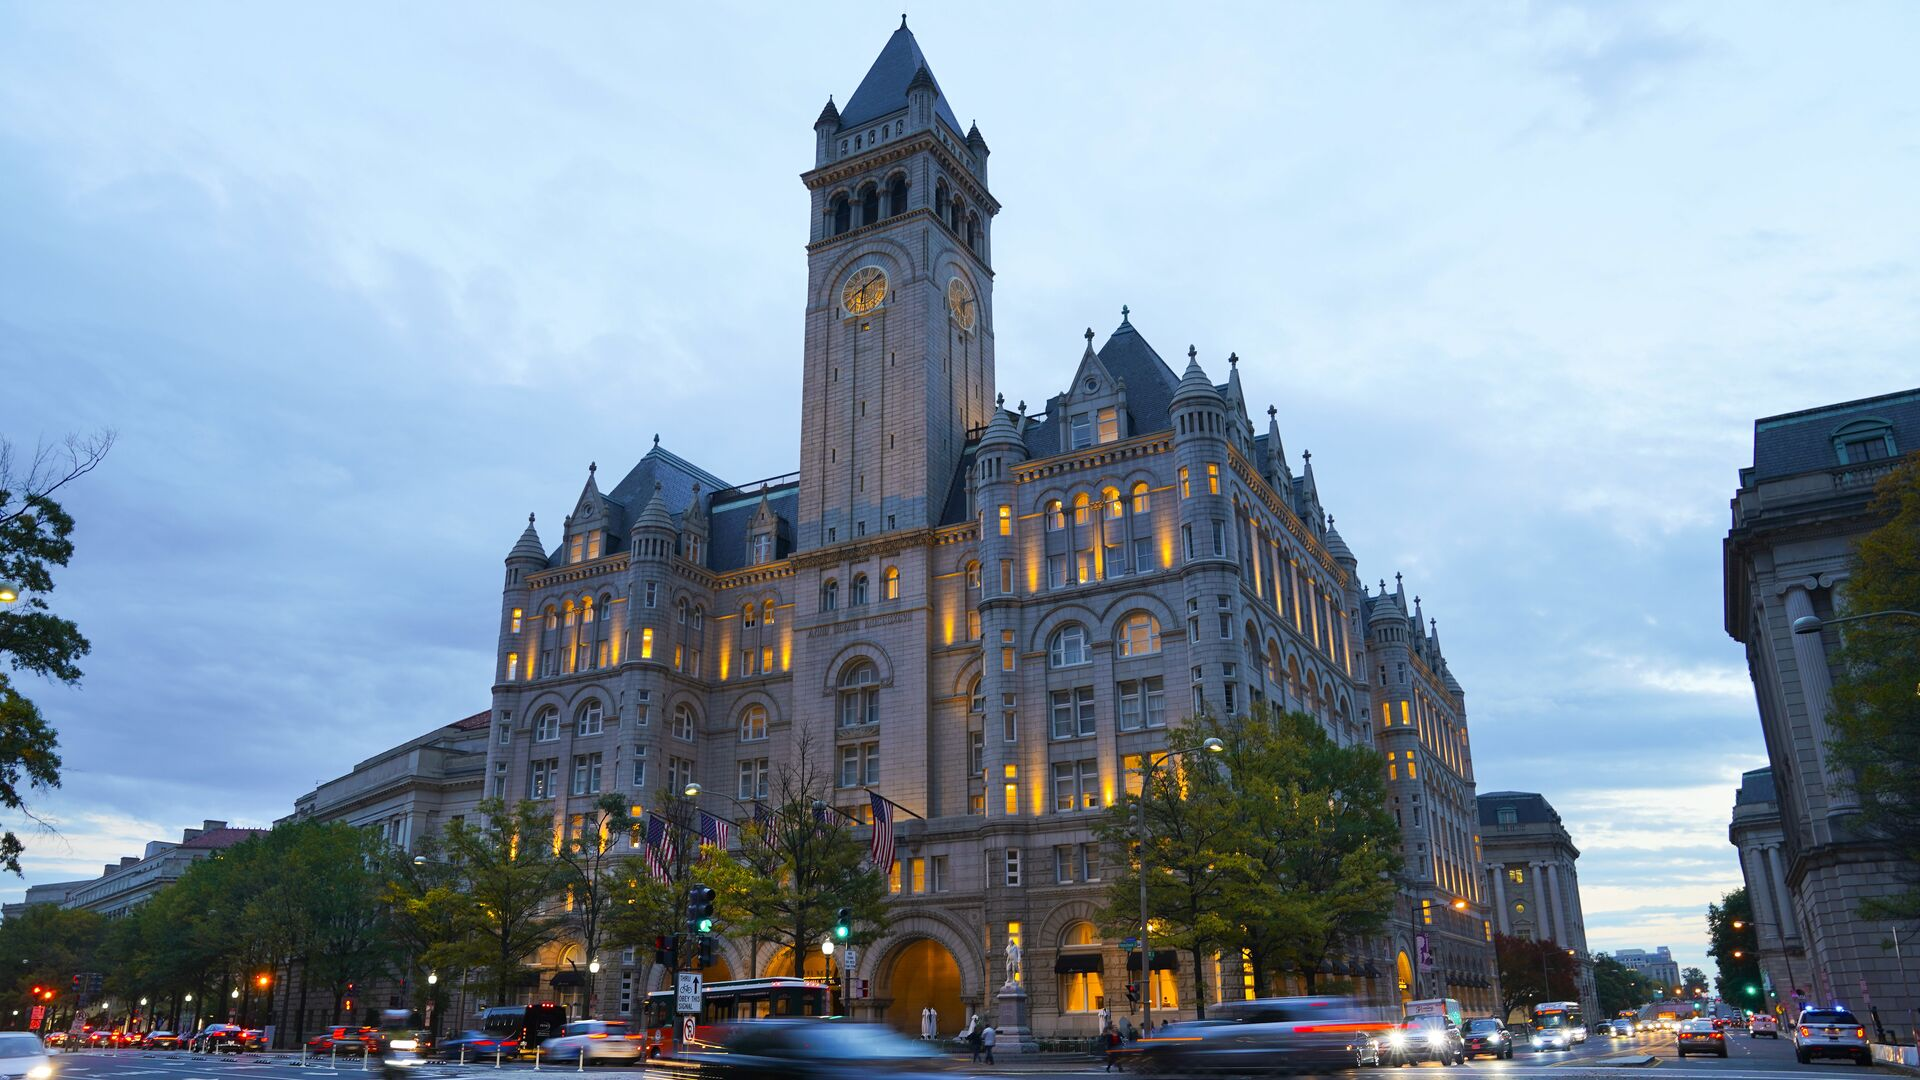 Trump International Hotel на Пенсильванском проспекте в Вашингтоне - РИА Новости, 1920, 17.02.2021